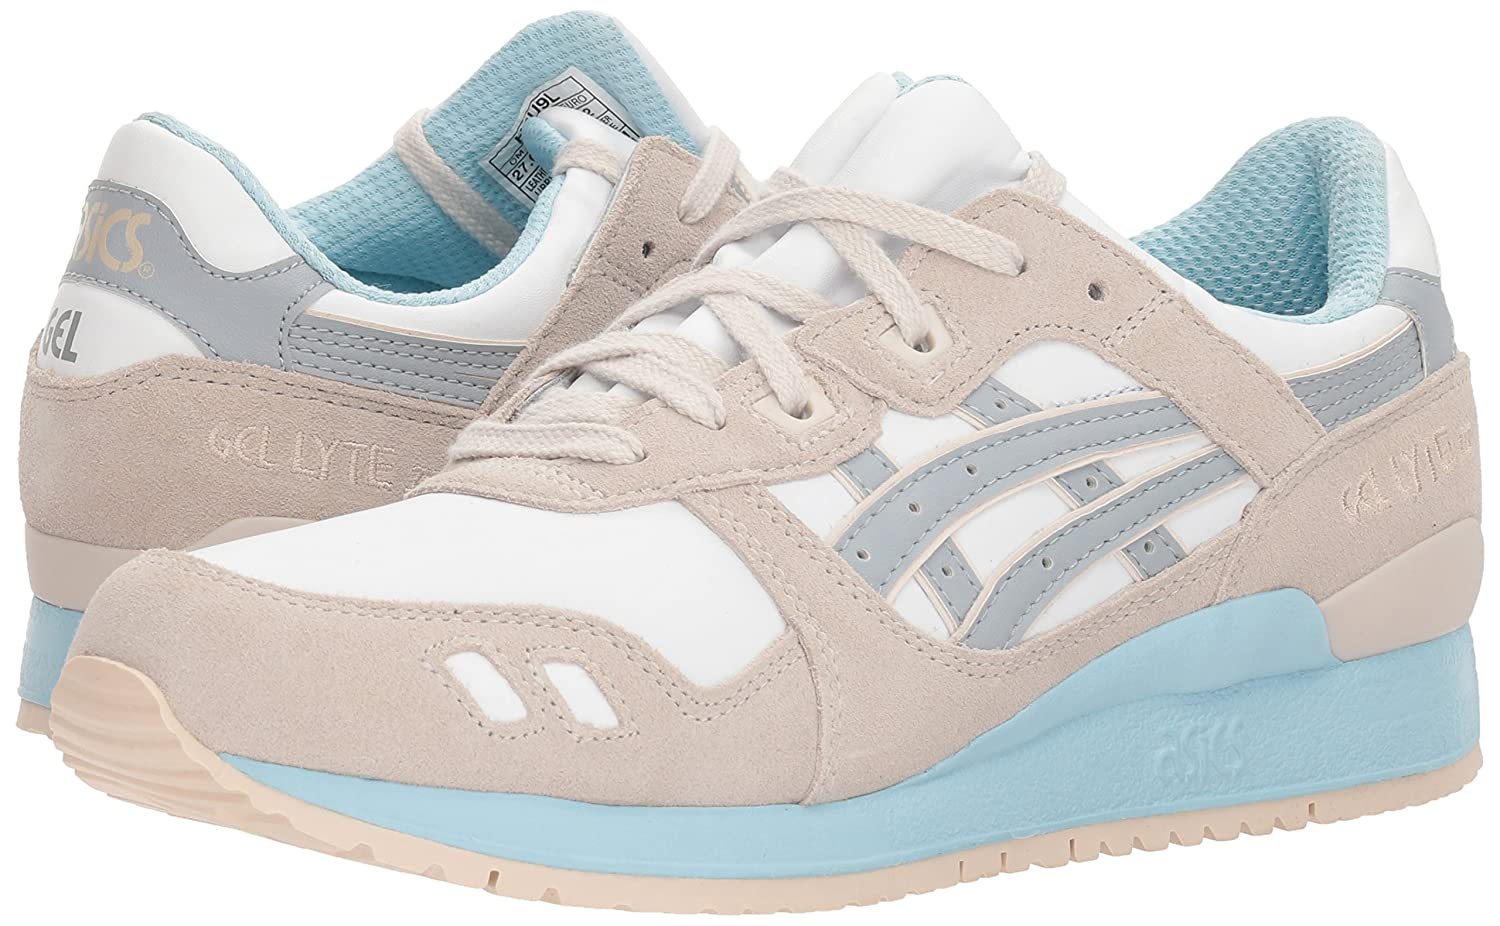 ASICS Men's GEL-Lyte III Sneaker B01B5EEUUK 8.5 B(M) US|White/Light Grey